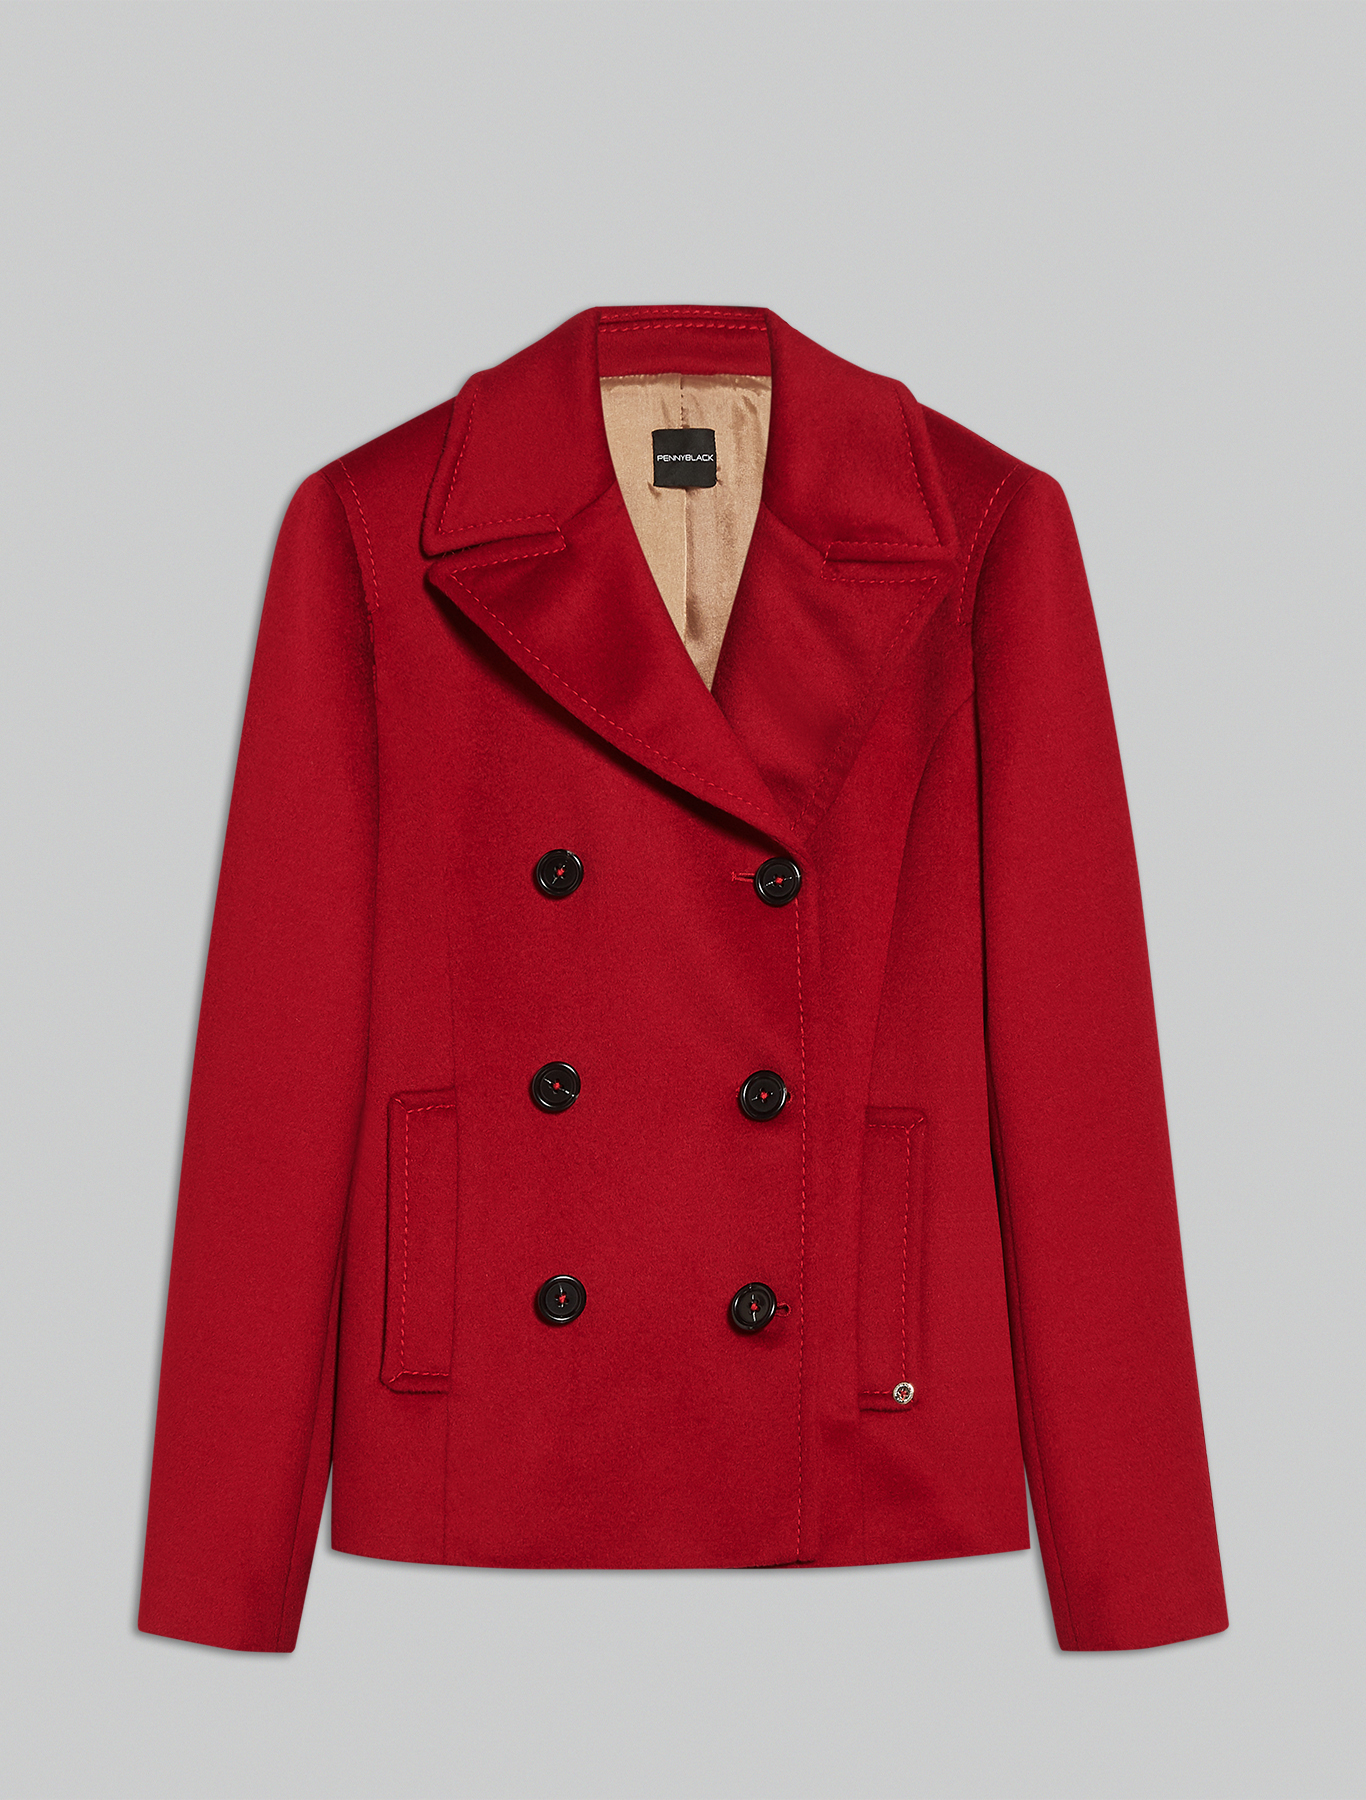 Wool velour pea coat - red - pennyblack